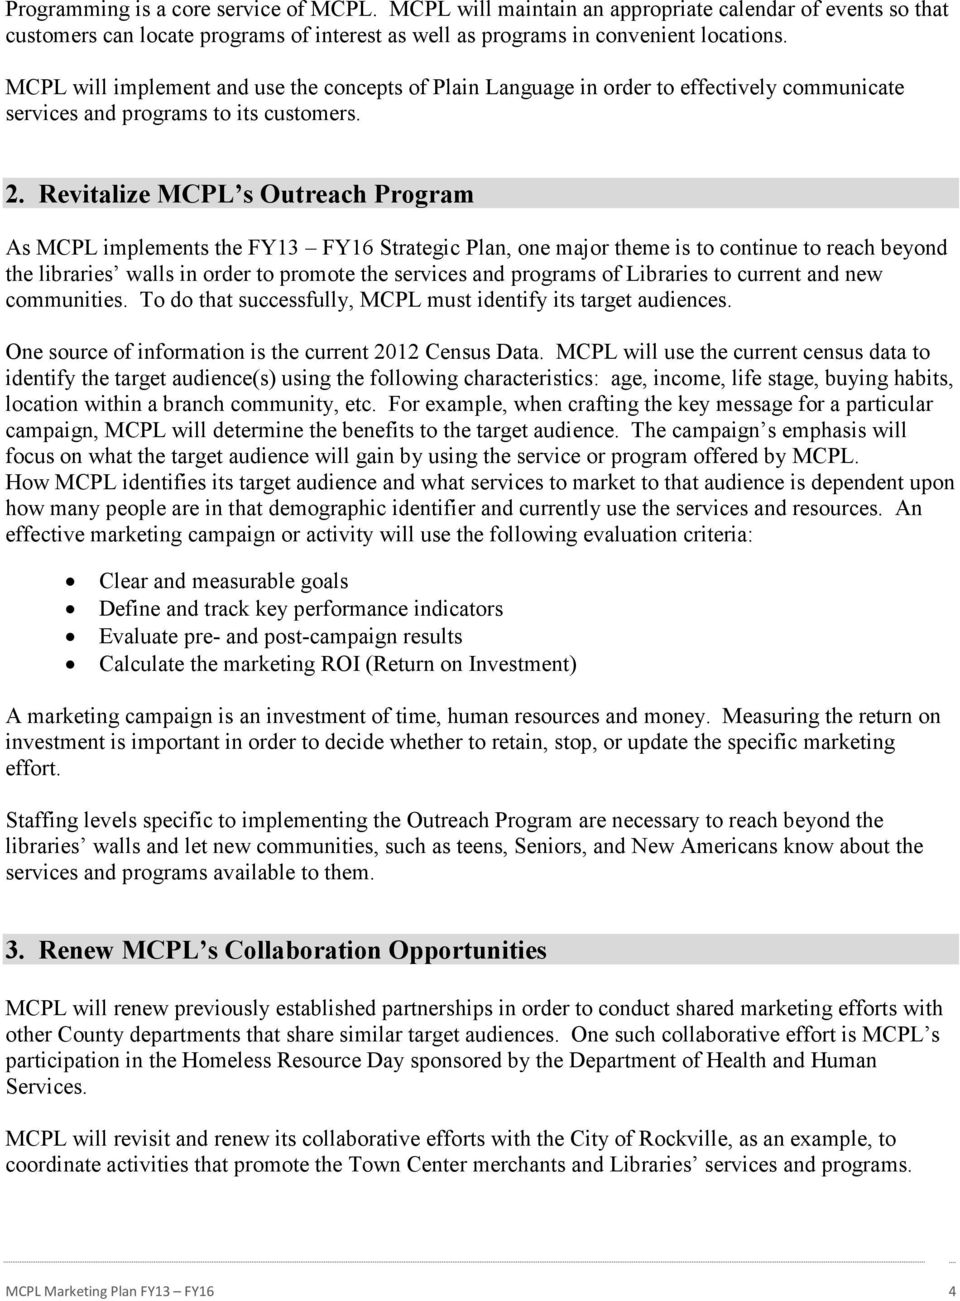 Revitalize MCPL s Outreach Program As MCPL implements the FY13 FY16 Strategic Plan, one major theme is to continue to reach beyond the libraries walls in order to promote the services and programs of